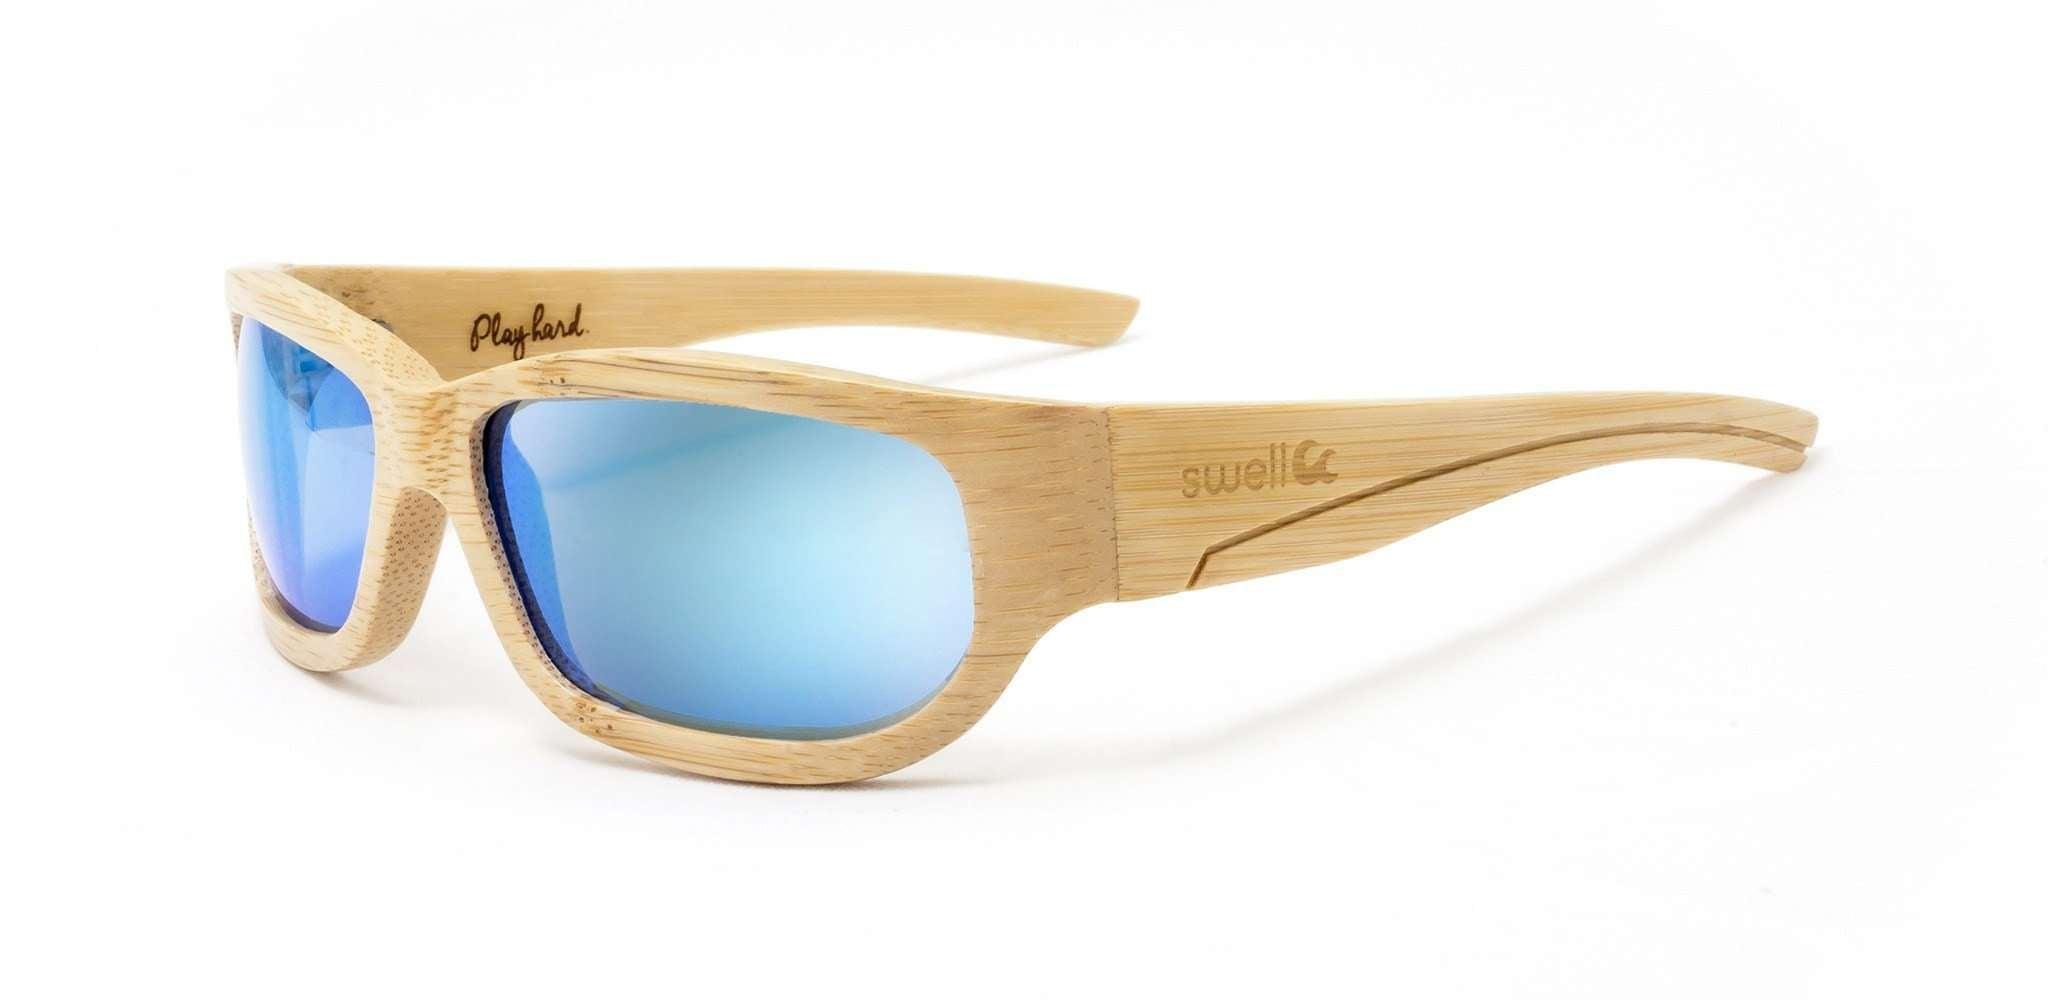 8af58bc917 Sportsman Natural Polarized Bamboo Sunglasses - SwellVision. Sportsman  Natural Polarized Bamboo Sunglasses - SwellVision